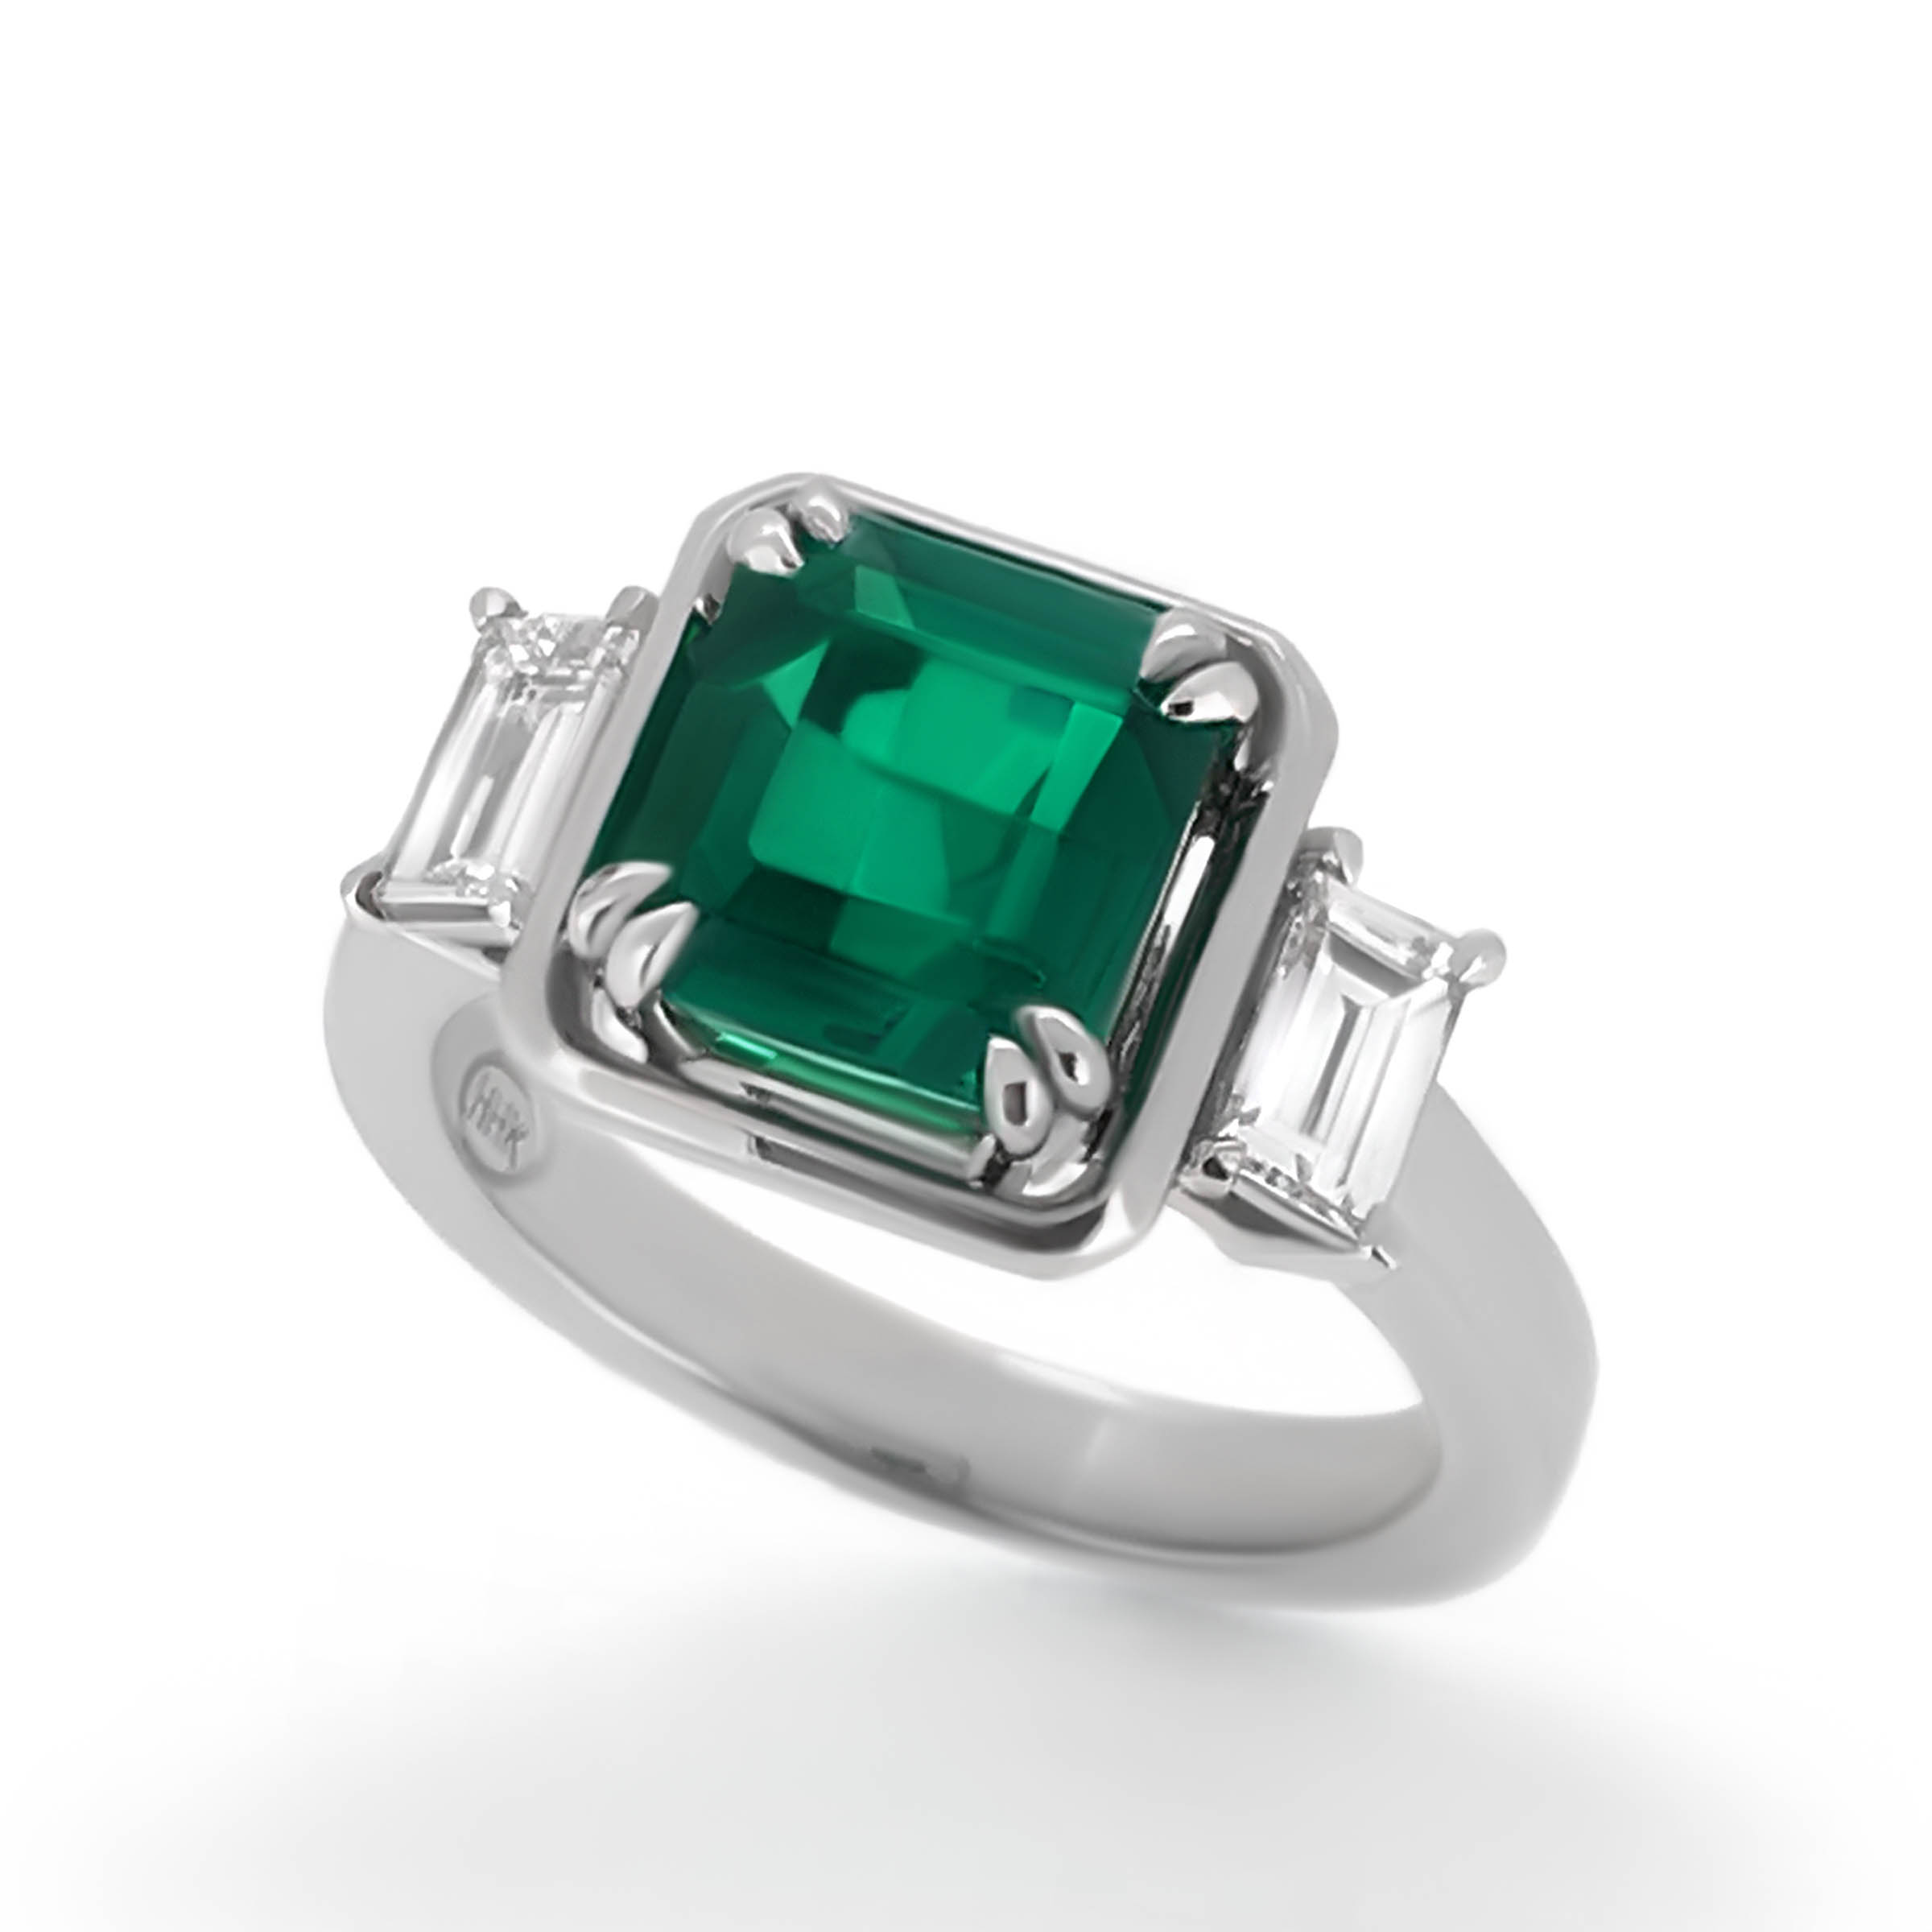 ring trillions engagement rings size of design trillionsgs settings cut emerald images diamond diamondg with antique unforgettable full settingsemerald